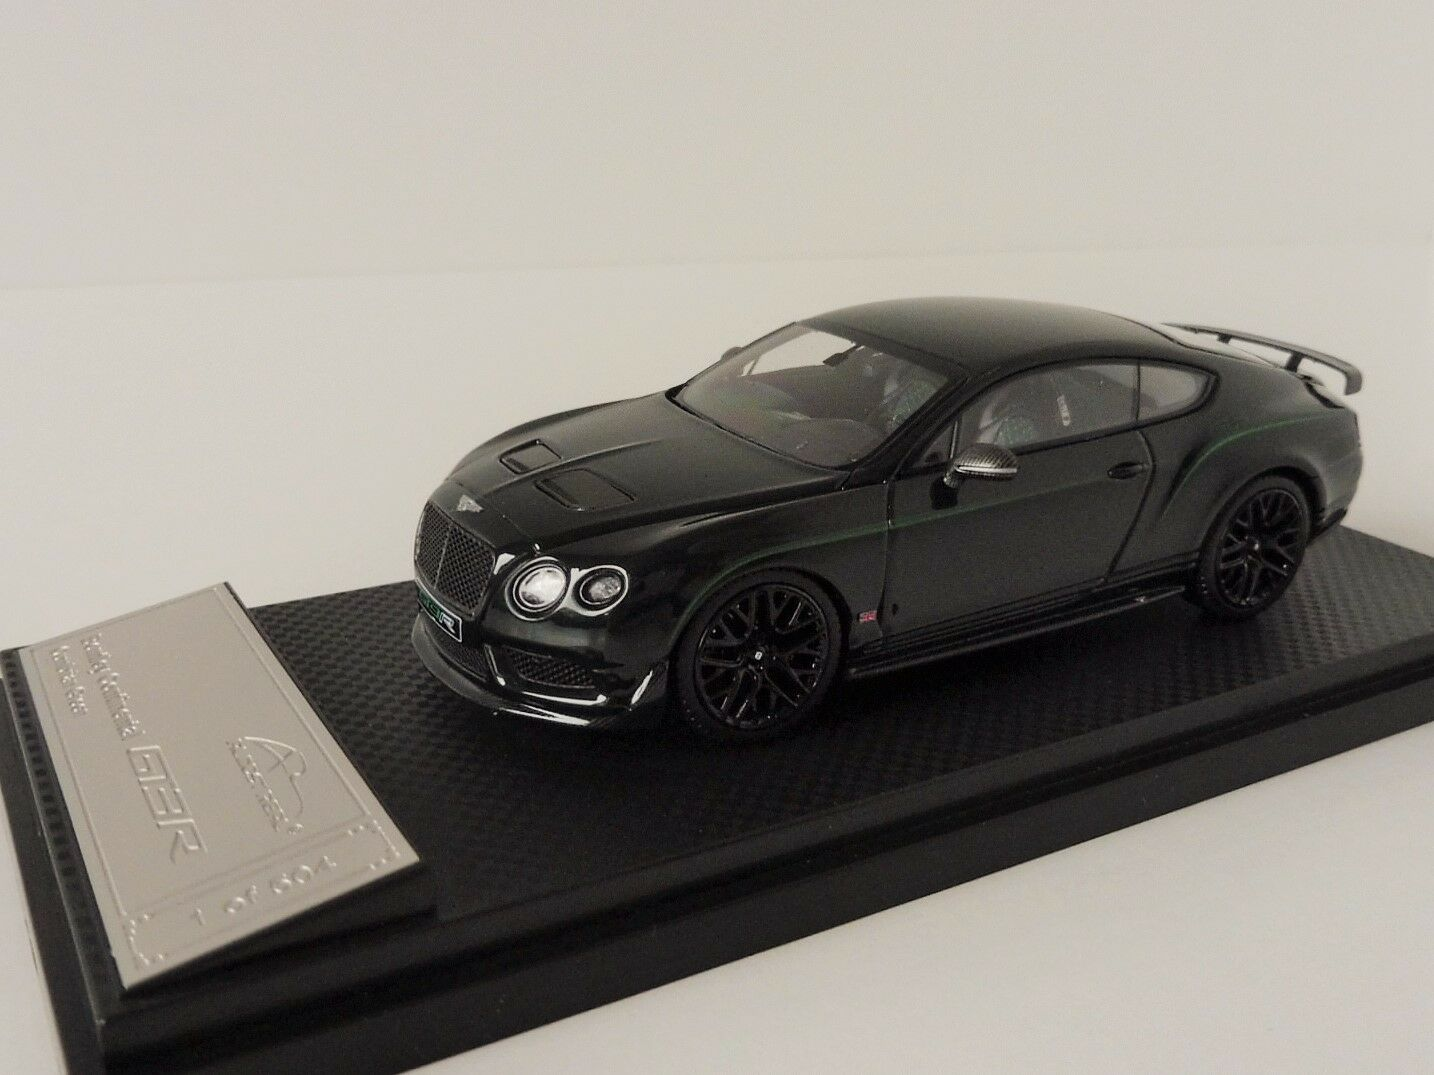 Bentley Continental Gt3 R 2015 1 43 Almost Reale 430405 Cumbrian green Cina